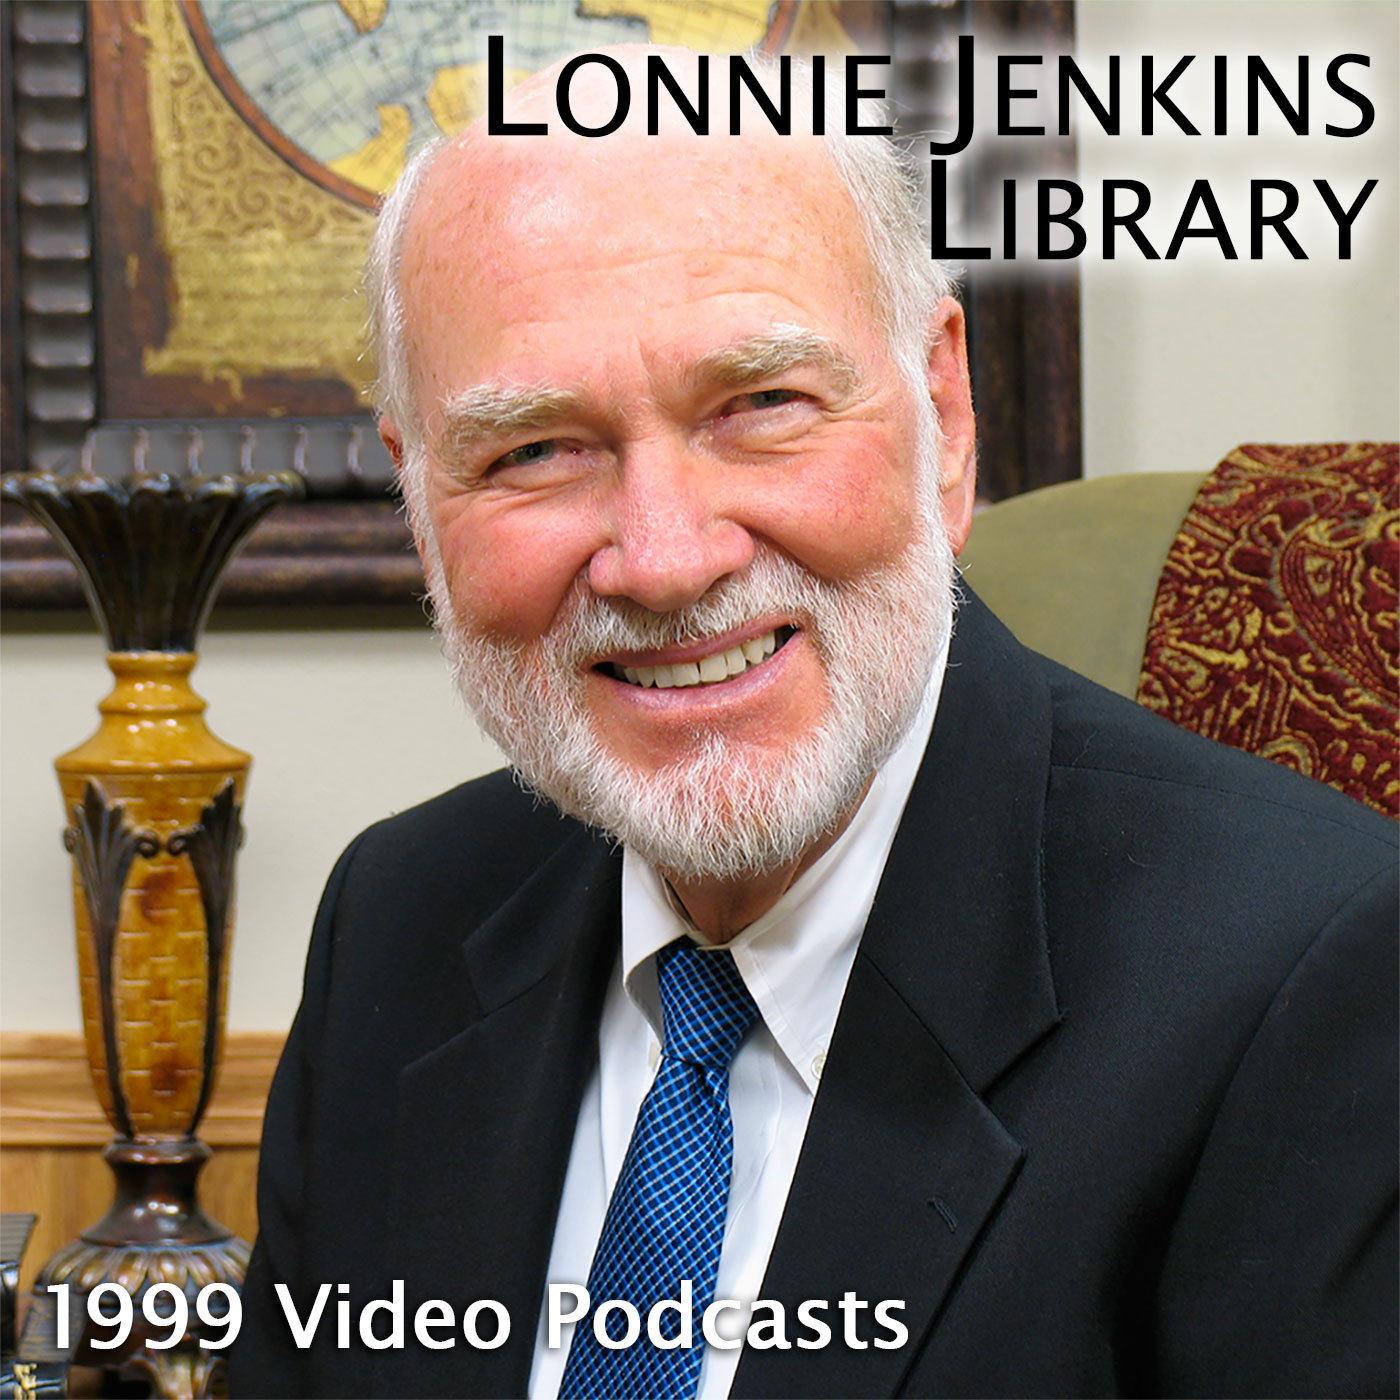 BCF 1999 Video Archives - Lonnie Jenkins